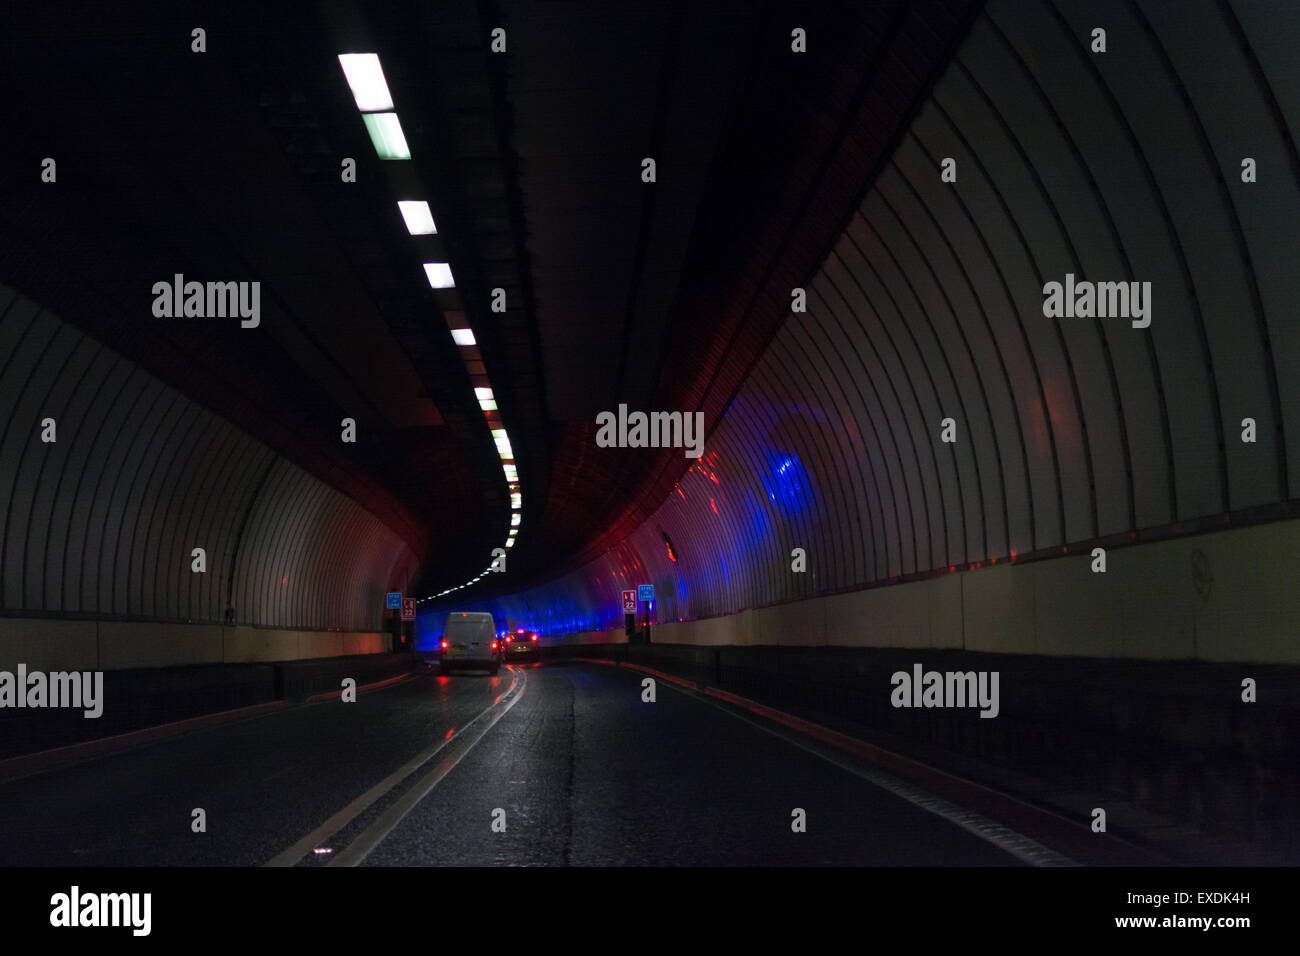 The Clyde Tunnel, Glasgow, Scotland, UK - Fire Engine lights reflected on the walls of the Clyde Tunnel - Stock Image